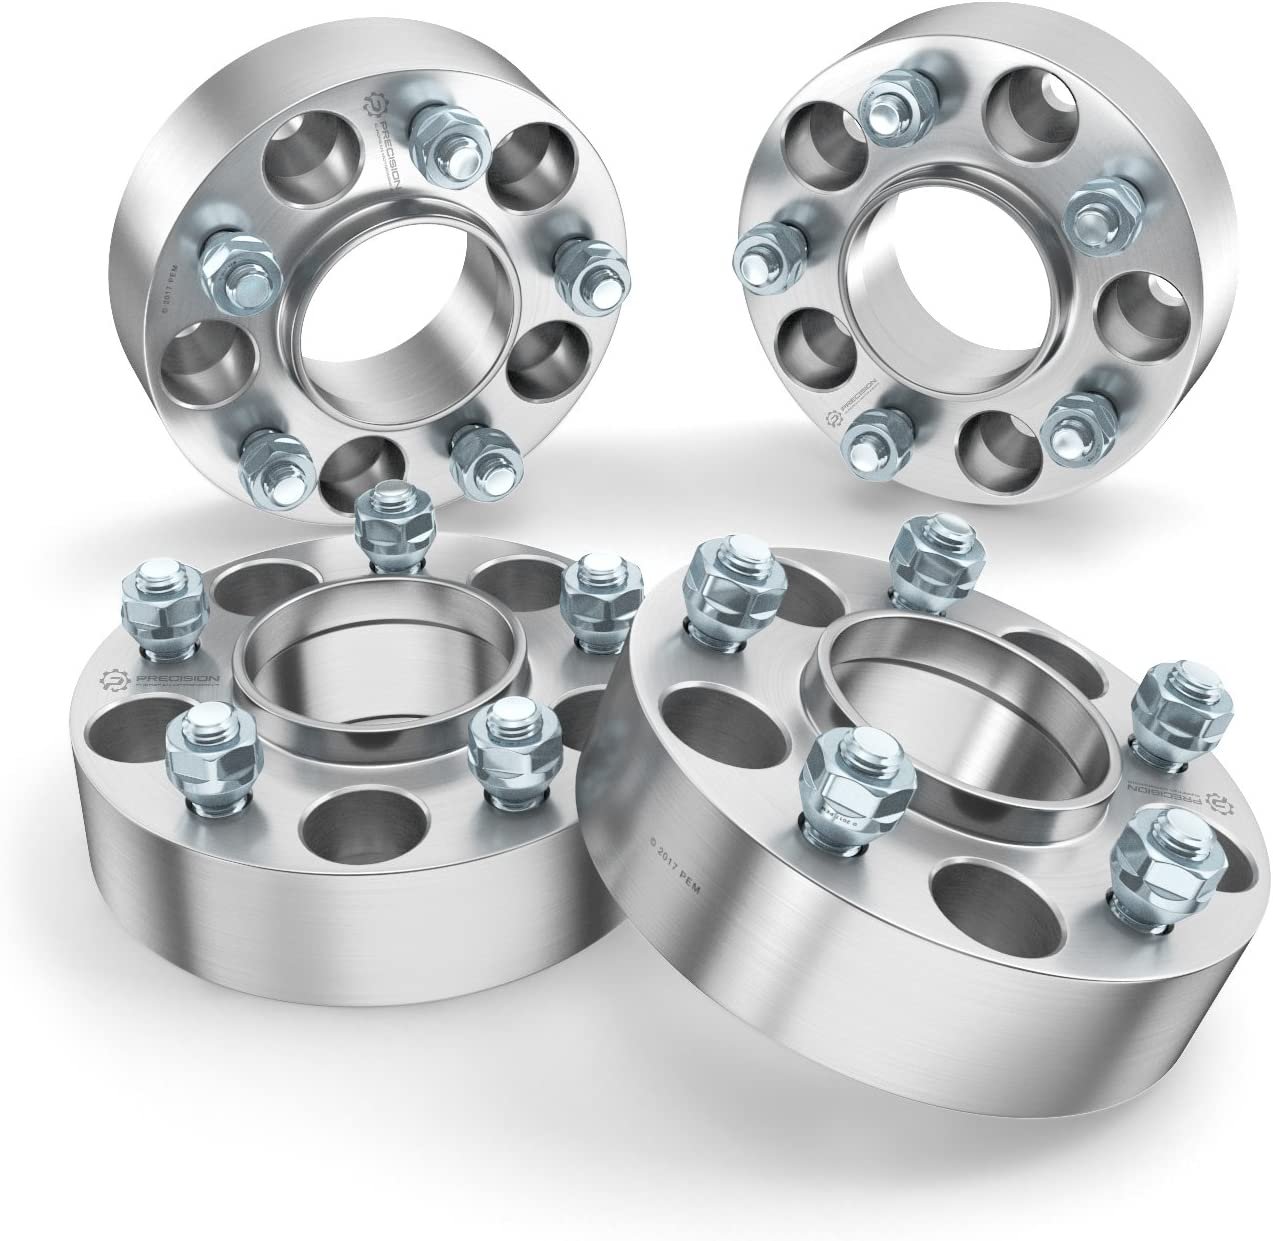 """4pc 5x5.5/"""" to 5x4.5/"""" Wheel Spacers Adapters 1.5/"""" for Ford Bronco E-100 E-150 bs"""